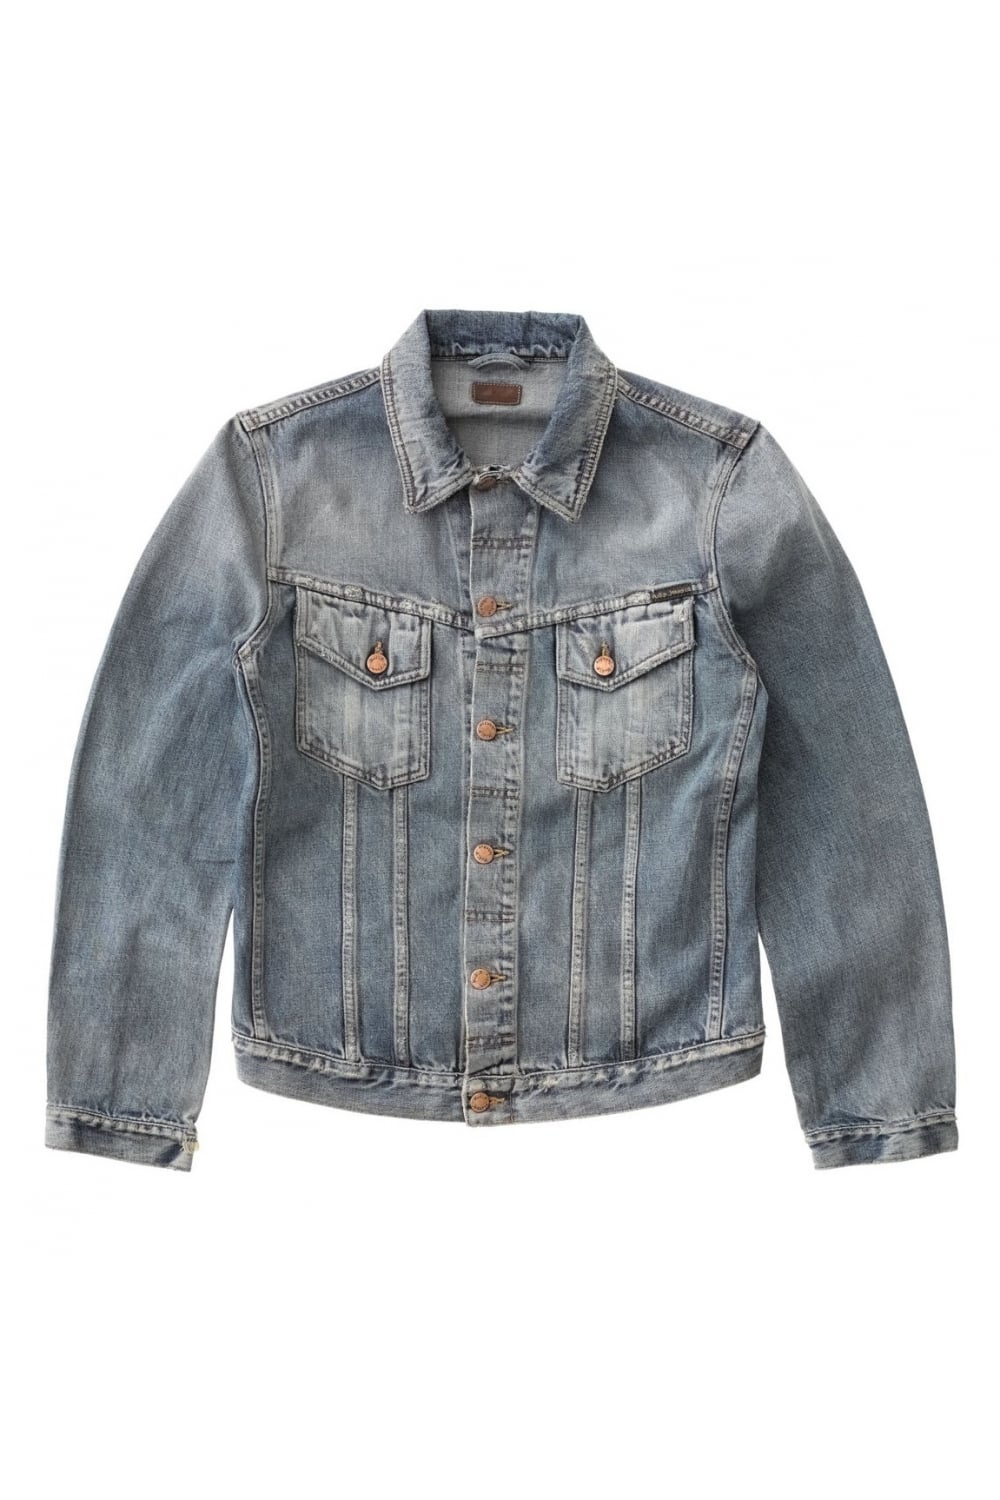 9e63de816a Nudie Jeans Co Billy Denim Jacket (Shimmering Indigo)